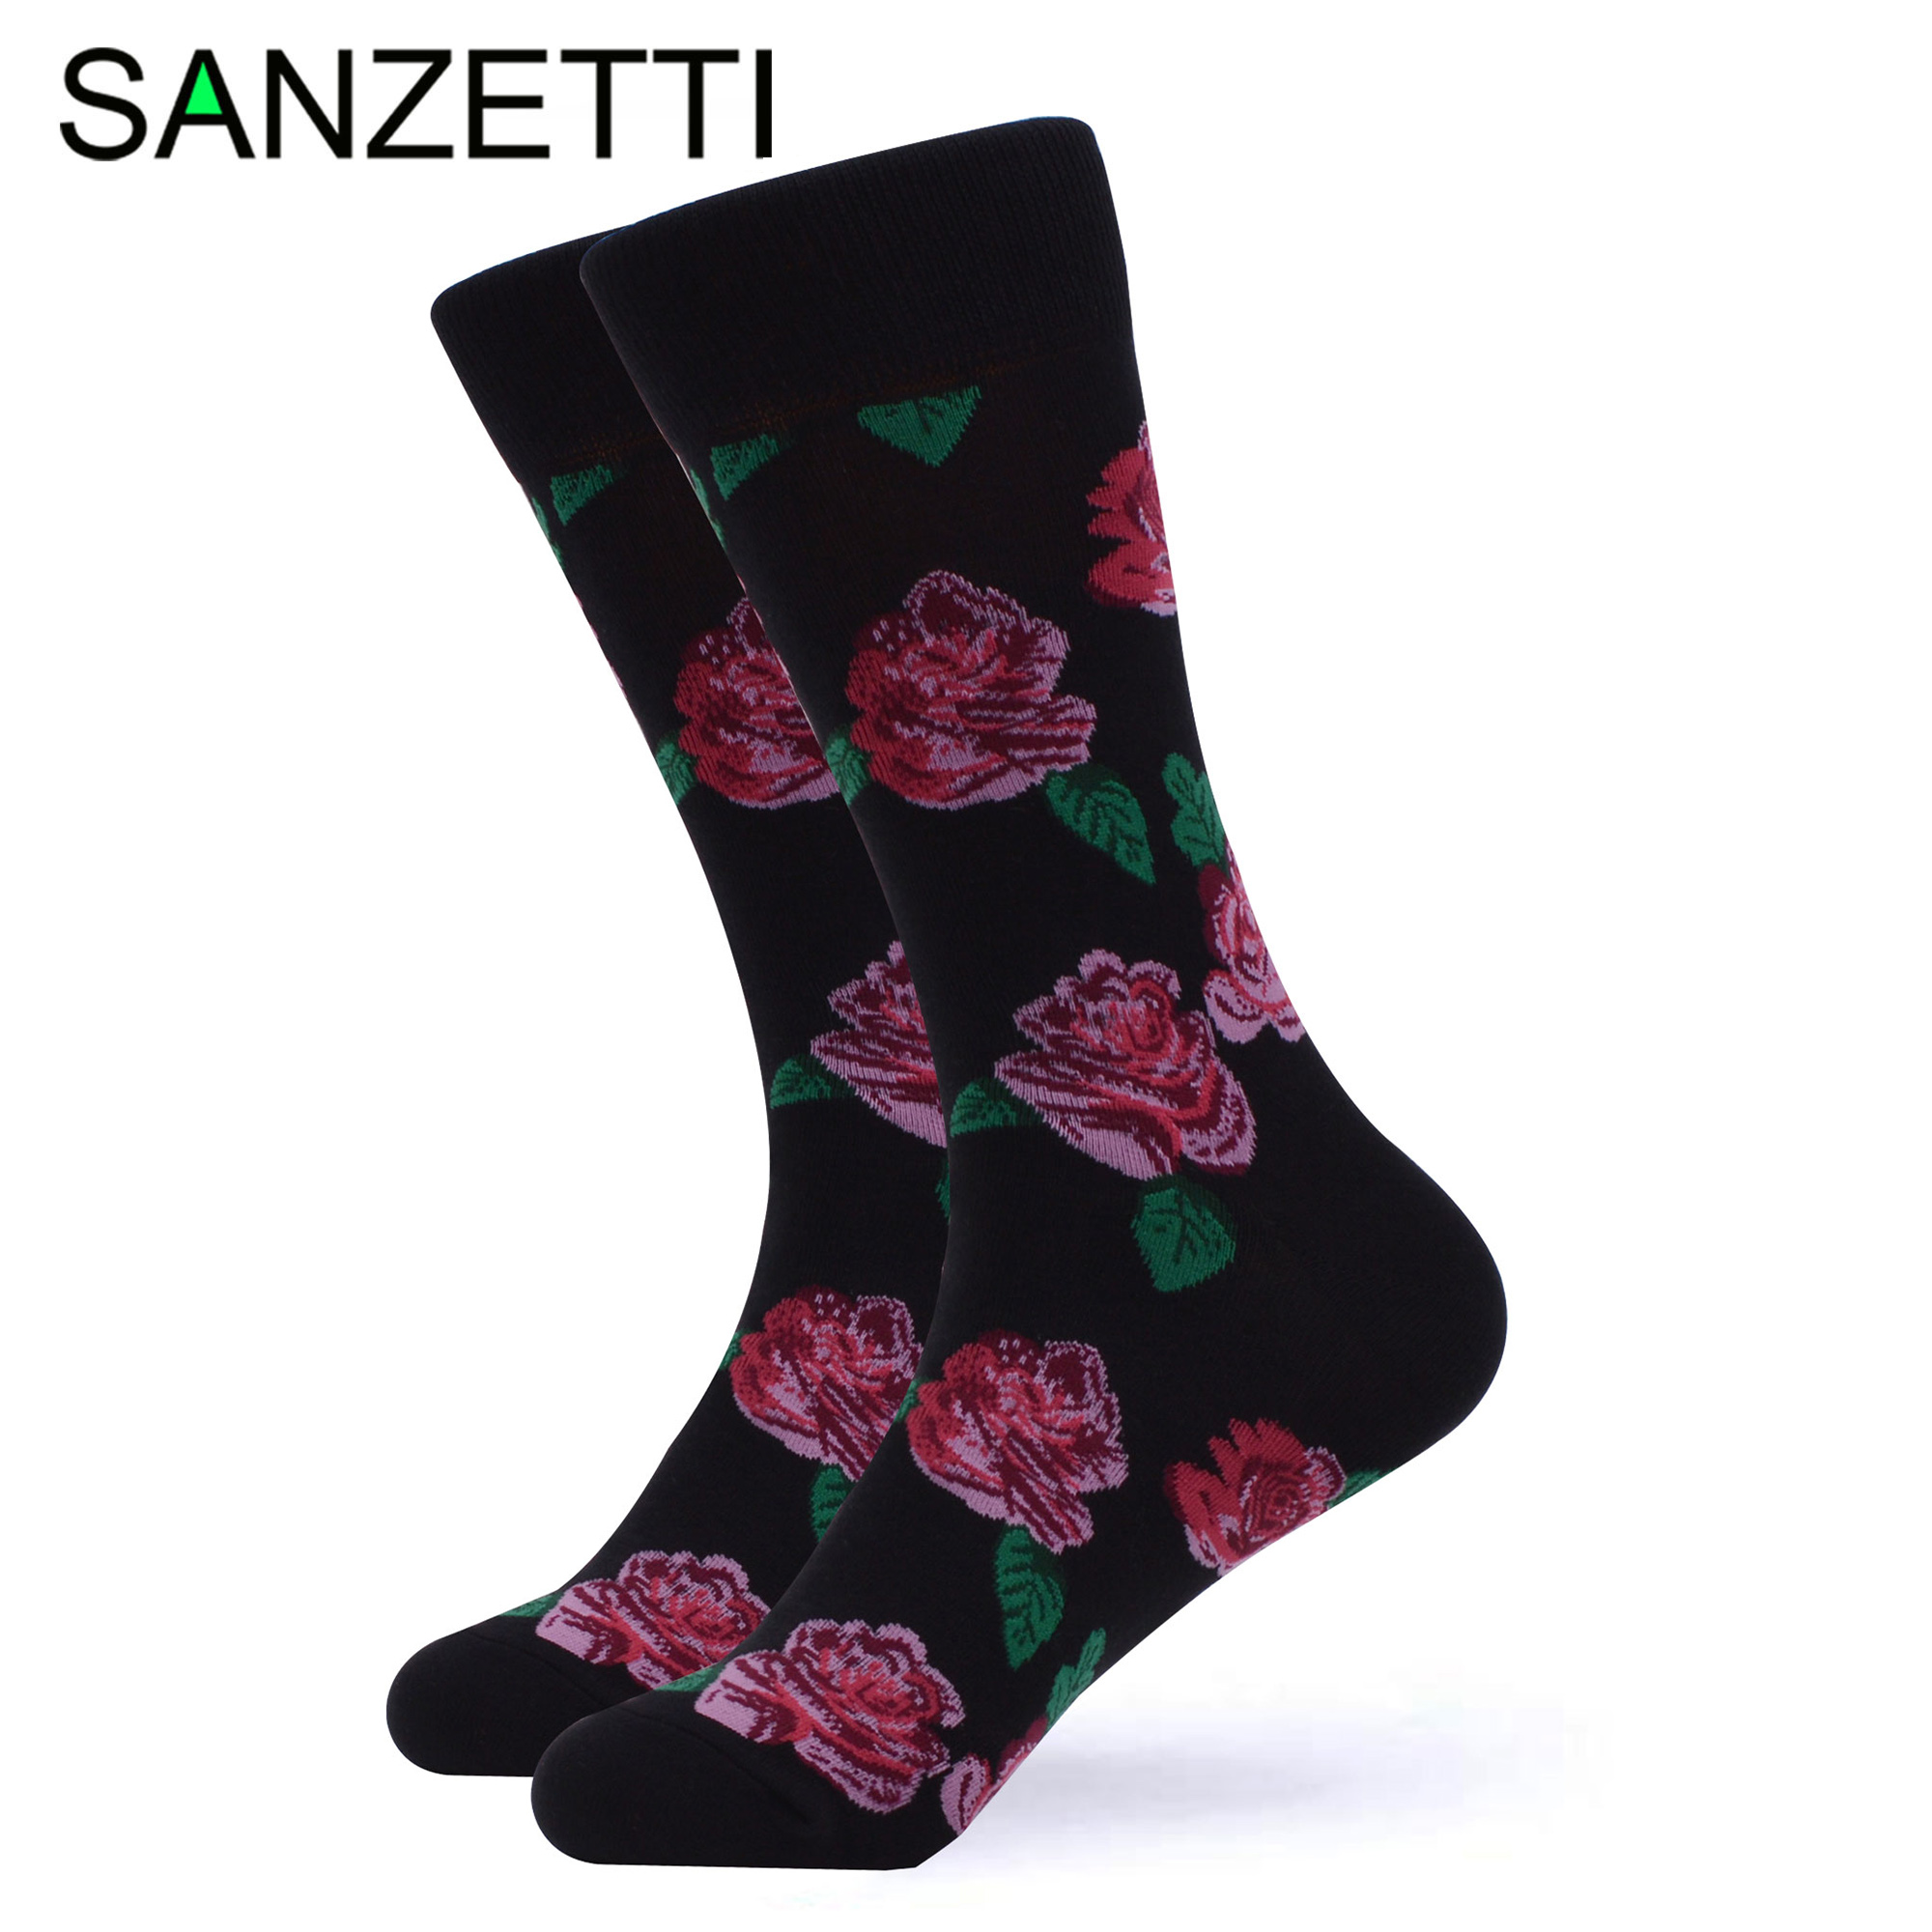 SANZETTI 1 Pair Colorful Bright Women Socks Novelty Combed Cotton Rose Cute Sushi Banana Donuts Pretty Wedding Dress Happy Socks